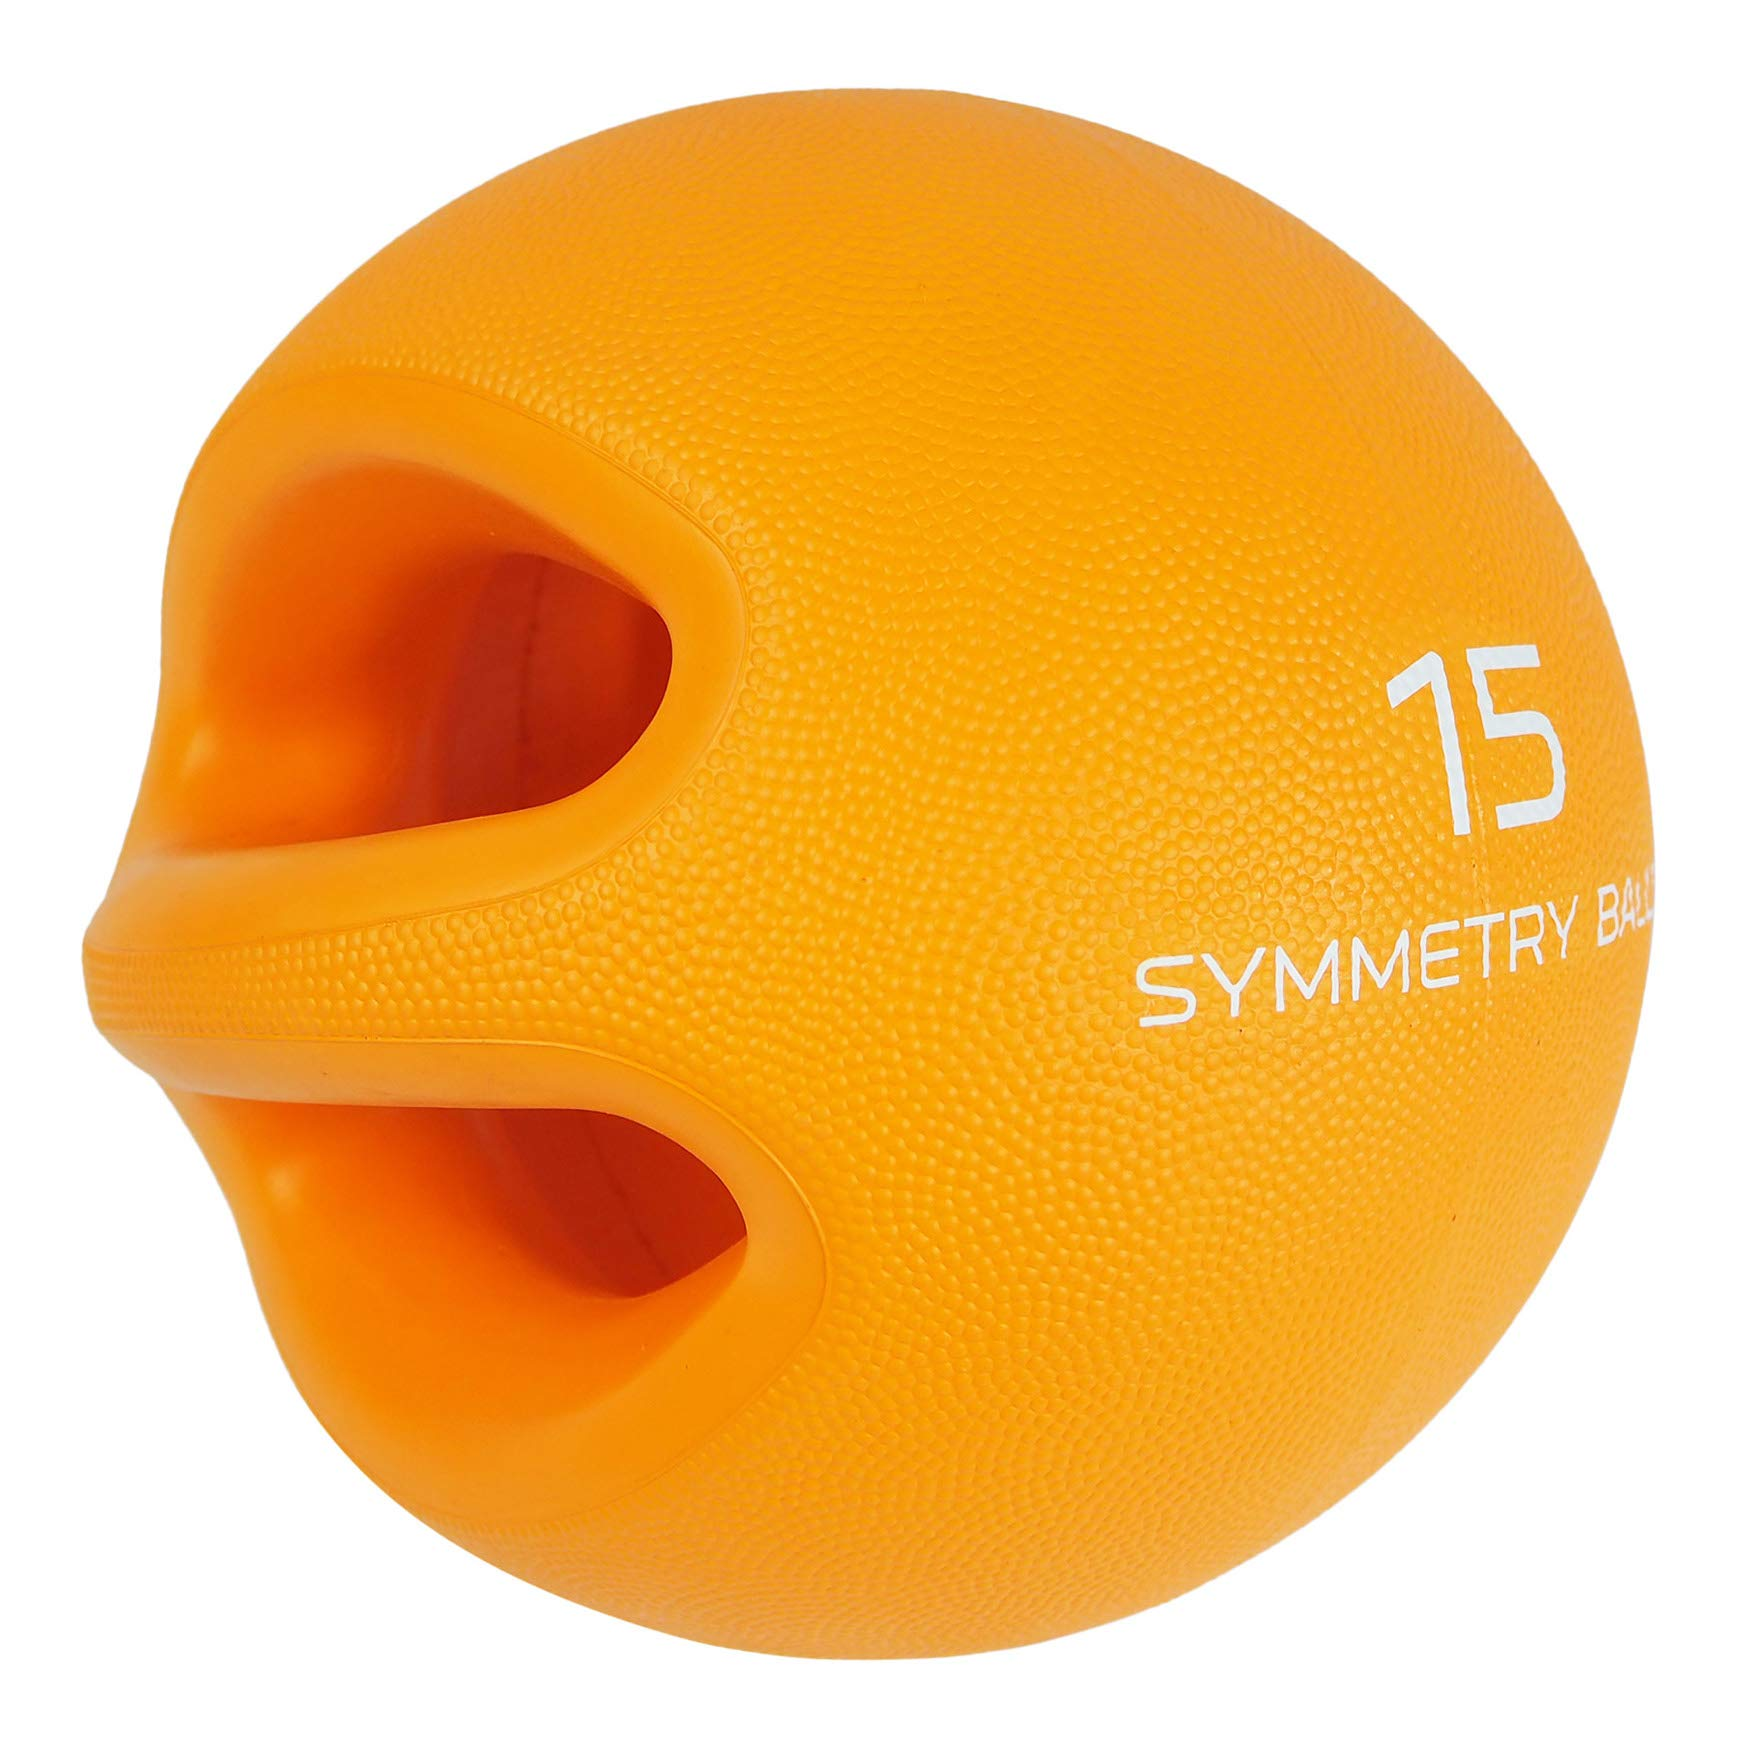 Smart Body Symmetry Ball - Patented Dual Handled